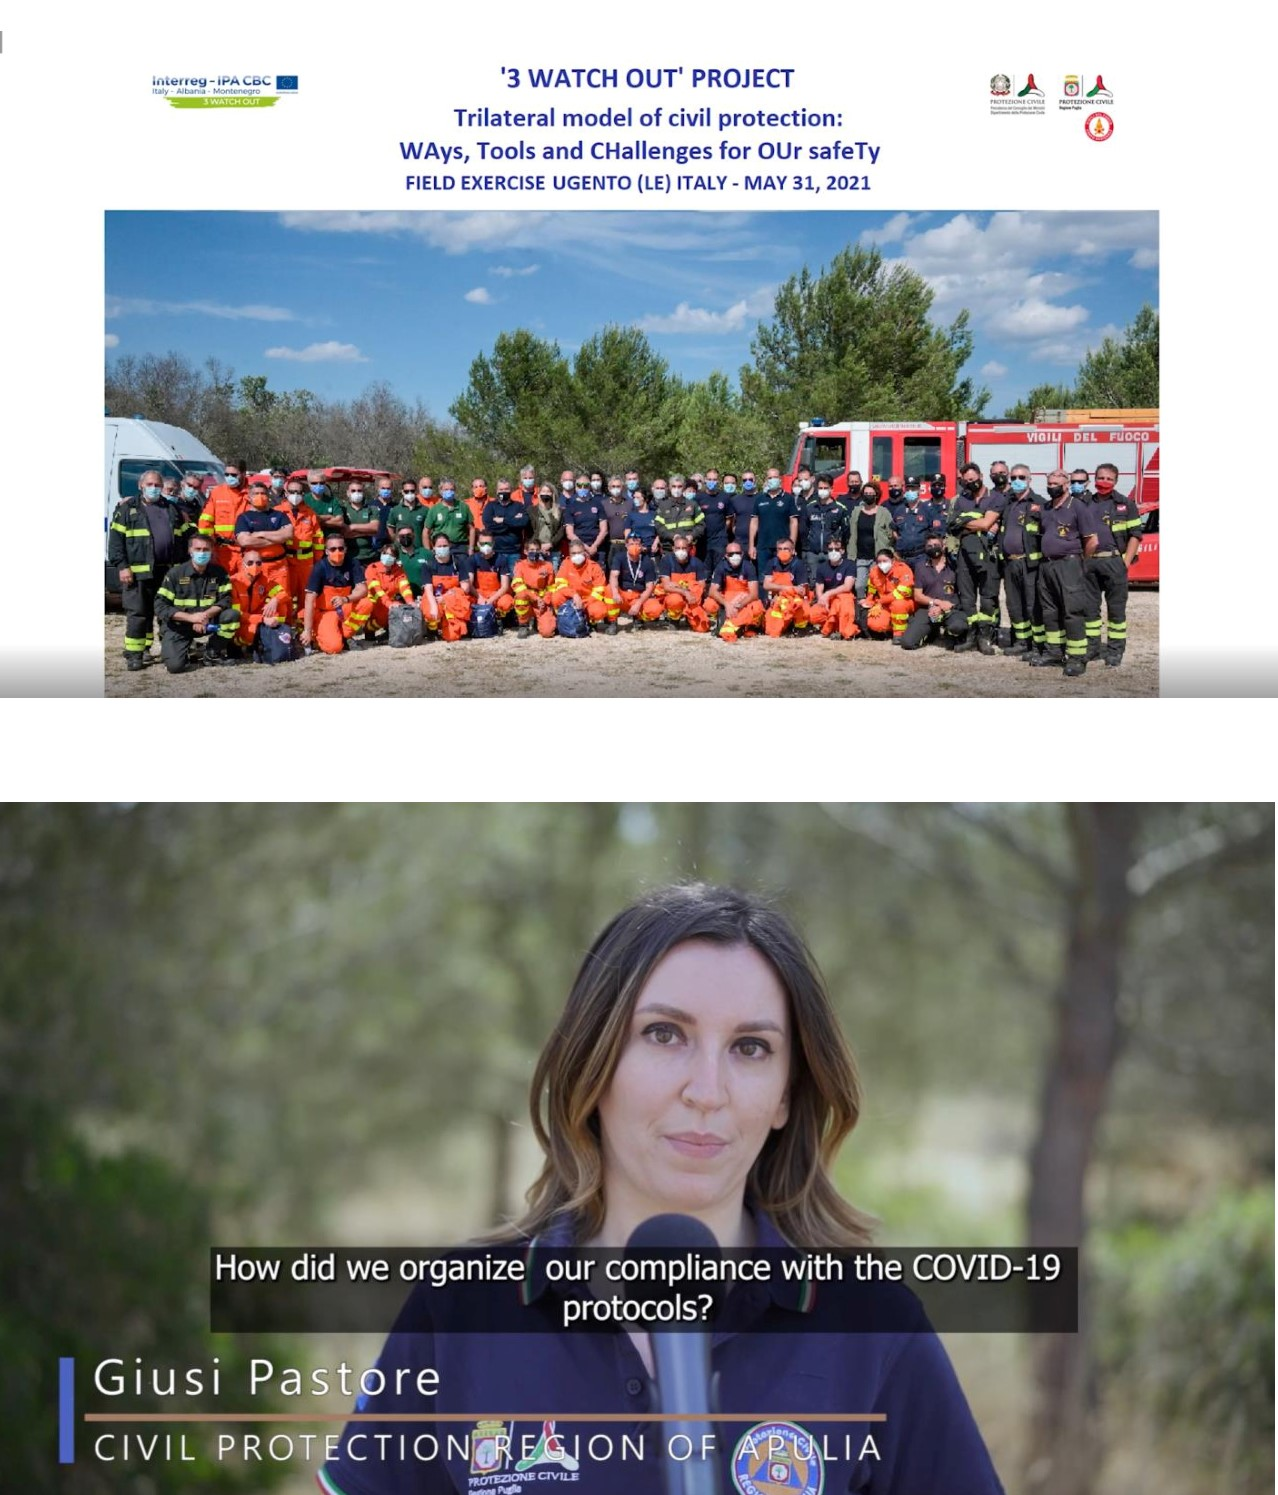 Galleria Grande partecipazione al workshop Women at the forefront of the emergency: resilience stories - Diapositiva 5 di 5